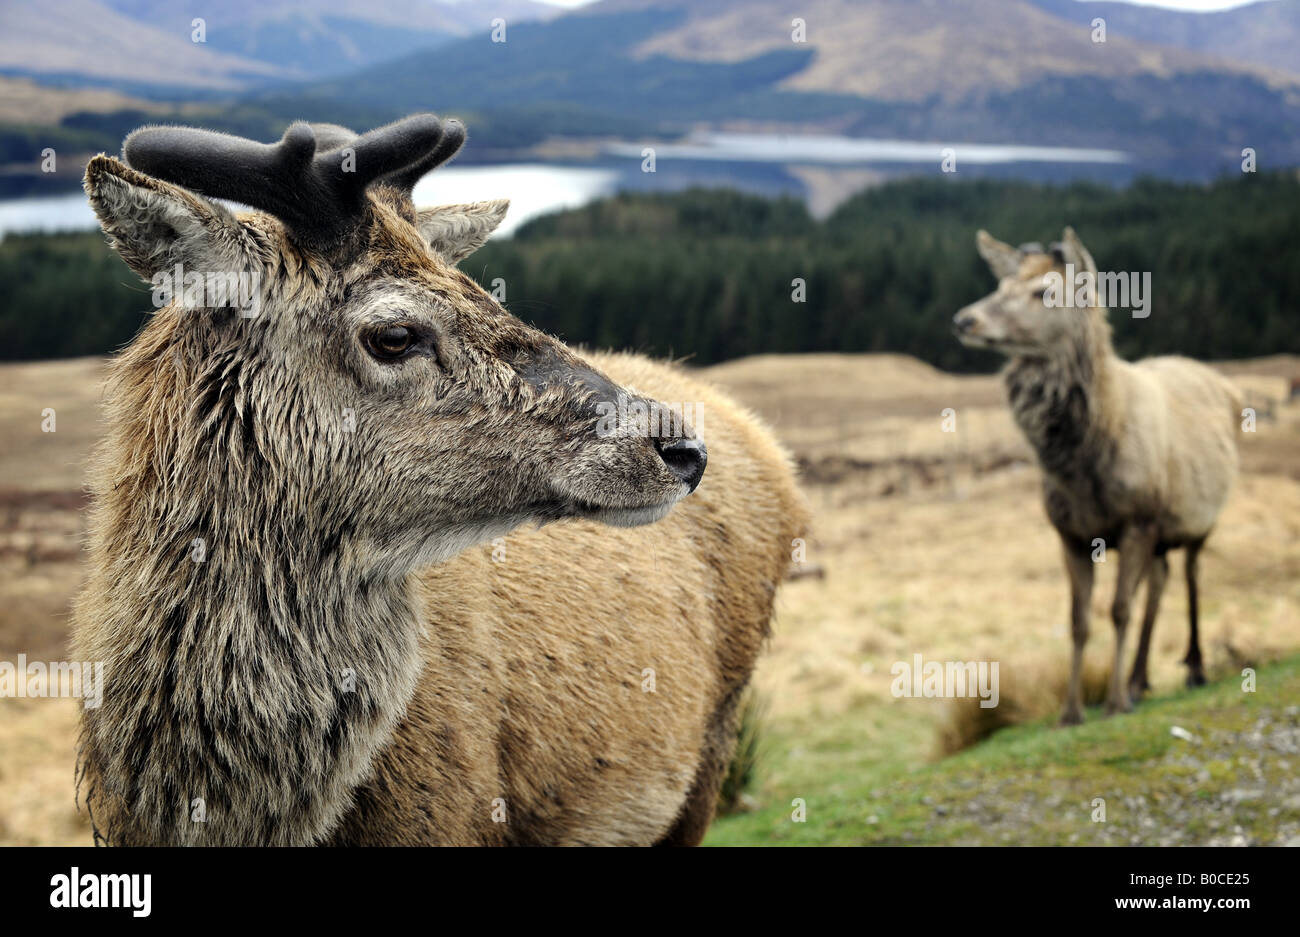 A PAIR OF NATIVE SCOTTISH DEER PICTURED IN THE HIGHLANDS OF SCOTLAND,UK. - Stock Image